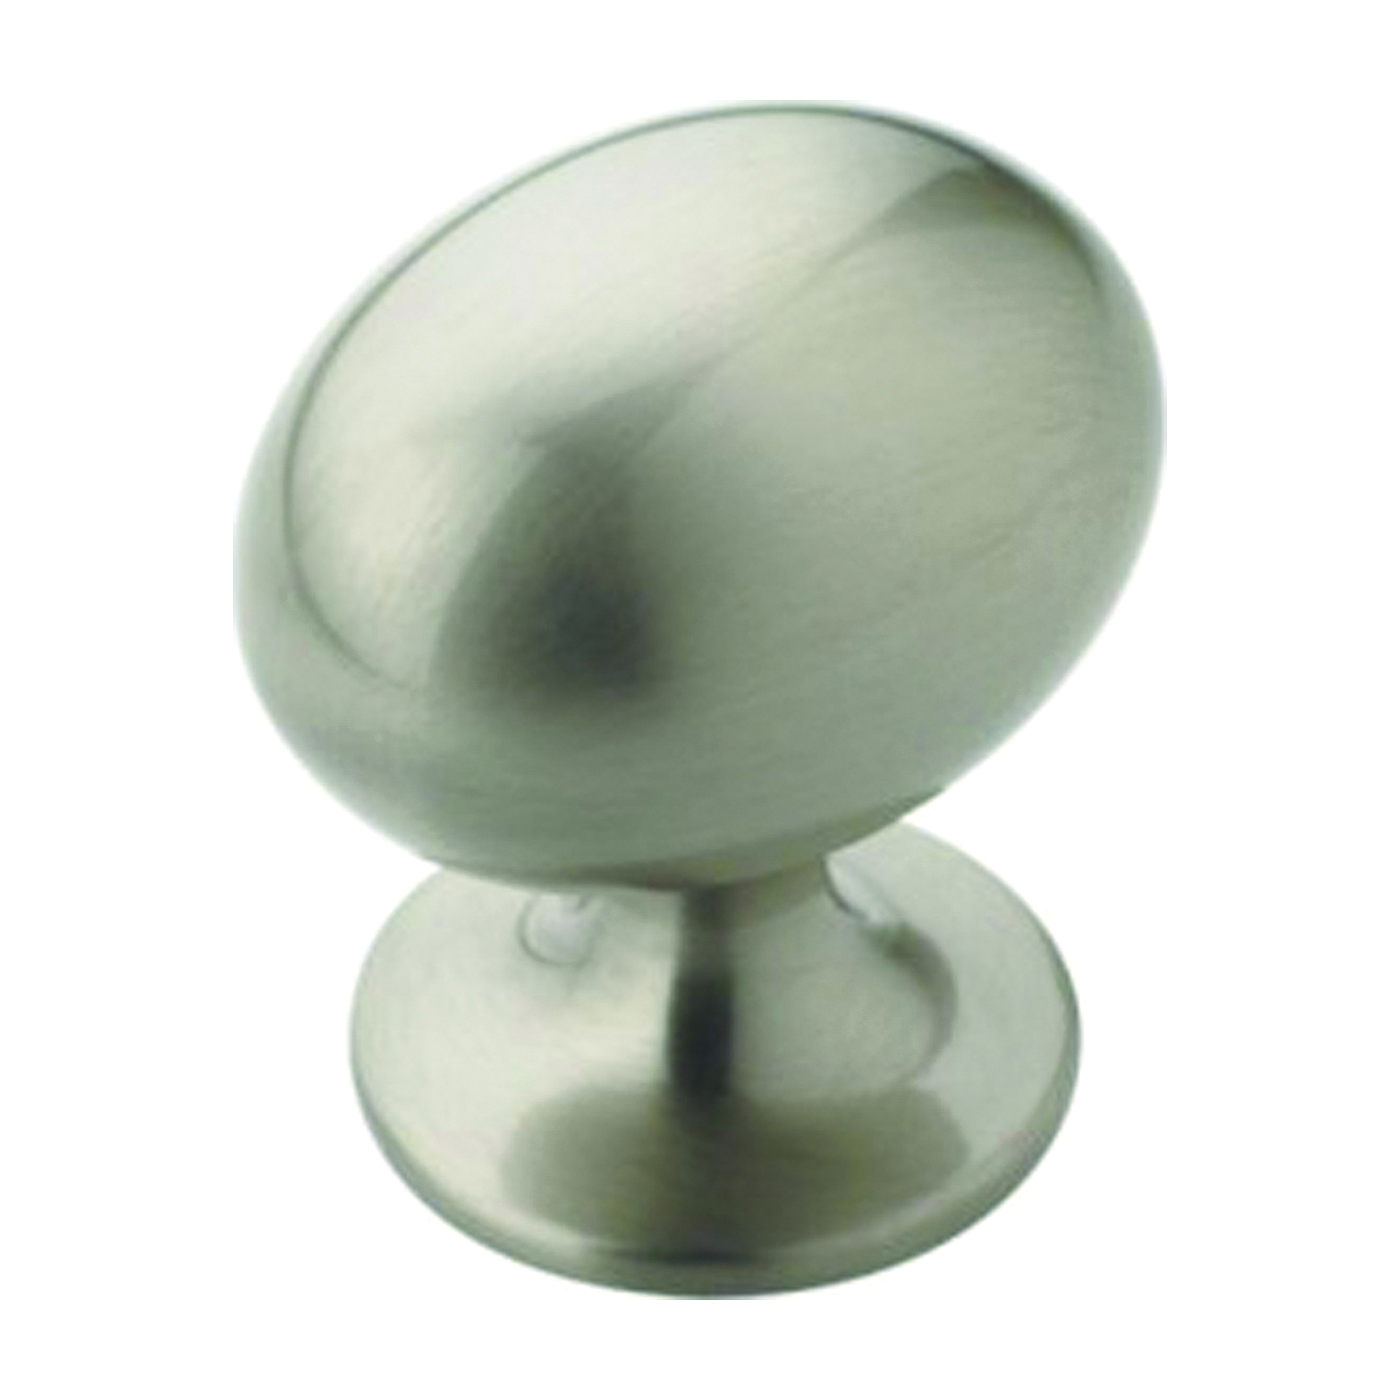 Picture of Amerock BP53018G10 Cabinet Knob, 1-3/8 in Projection, Zinc, Satin Nickel